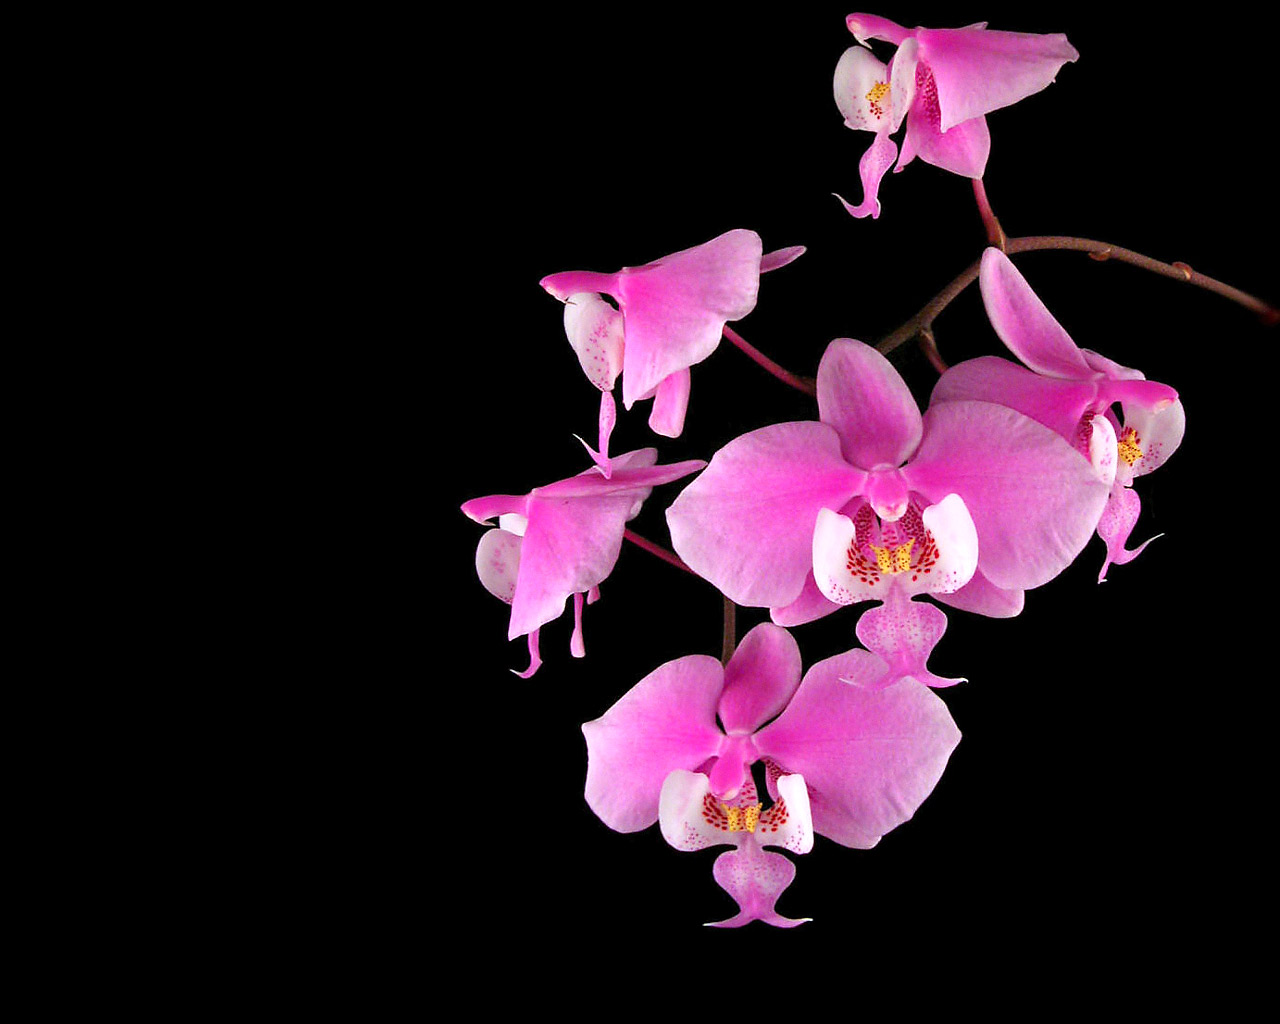 orchid wallpapers backgrounds images - photo #22